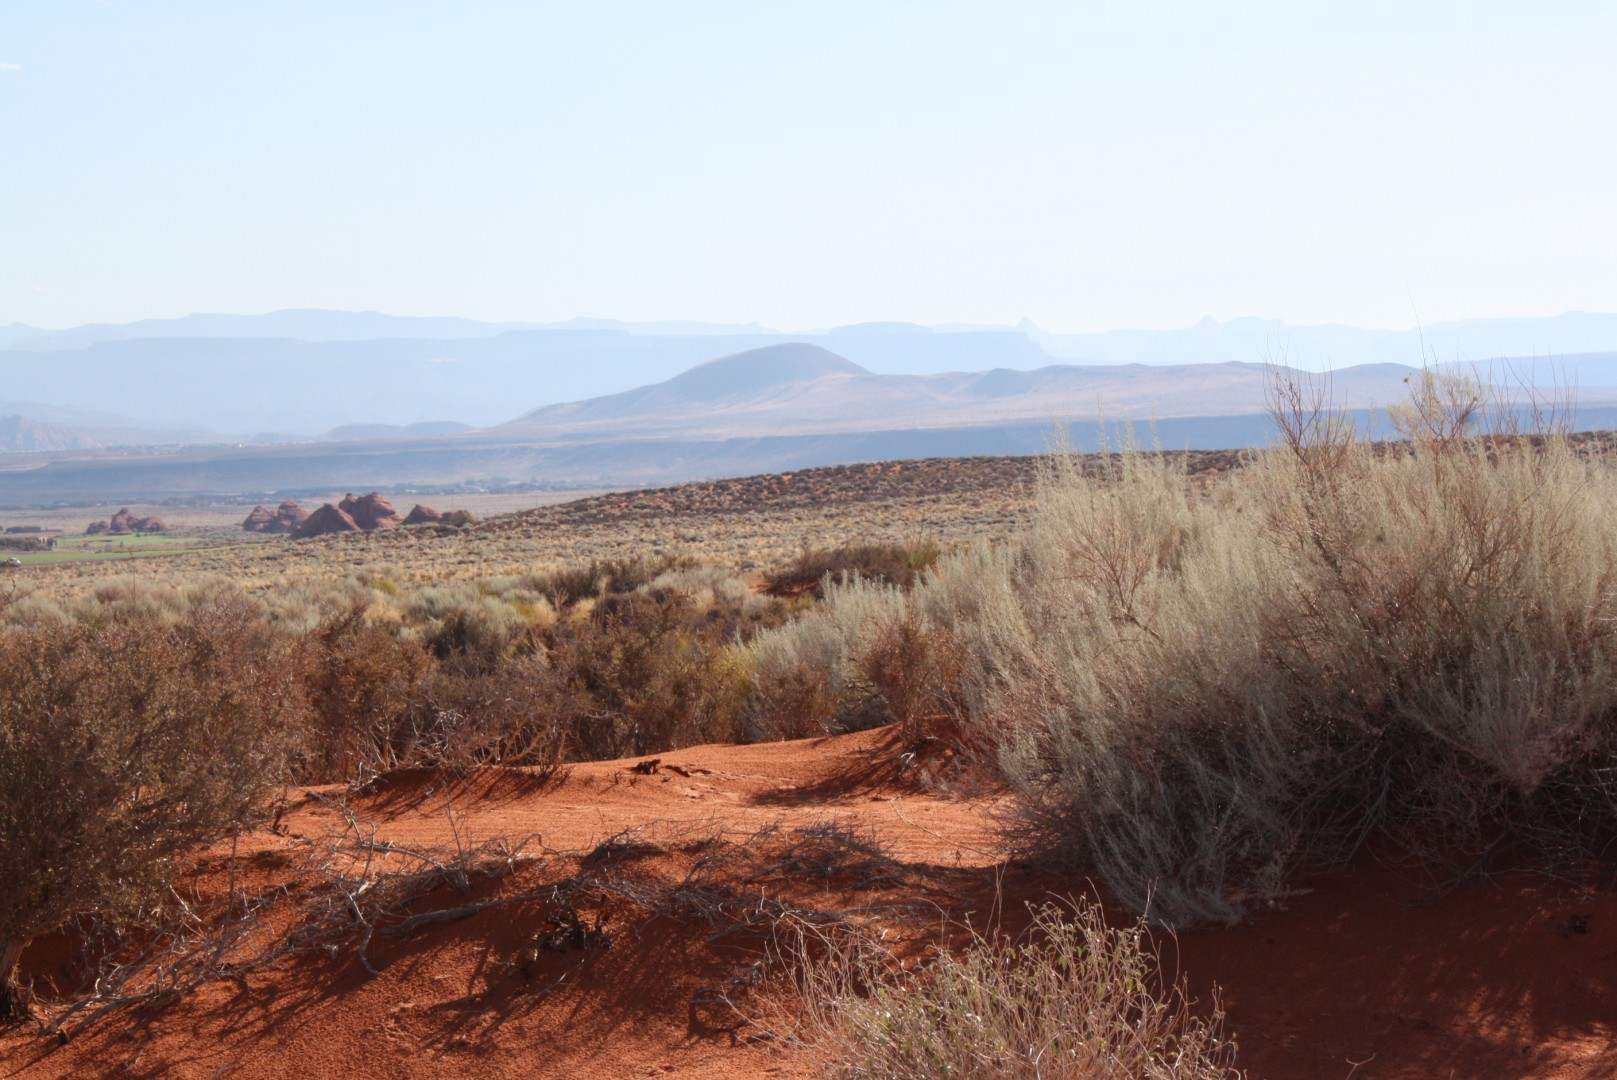 View of a section of the property included in the proposed Sand Hollow land exchange, July 11, 2014 | Photo by Reuben Wadsworth, St. George News